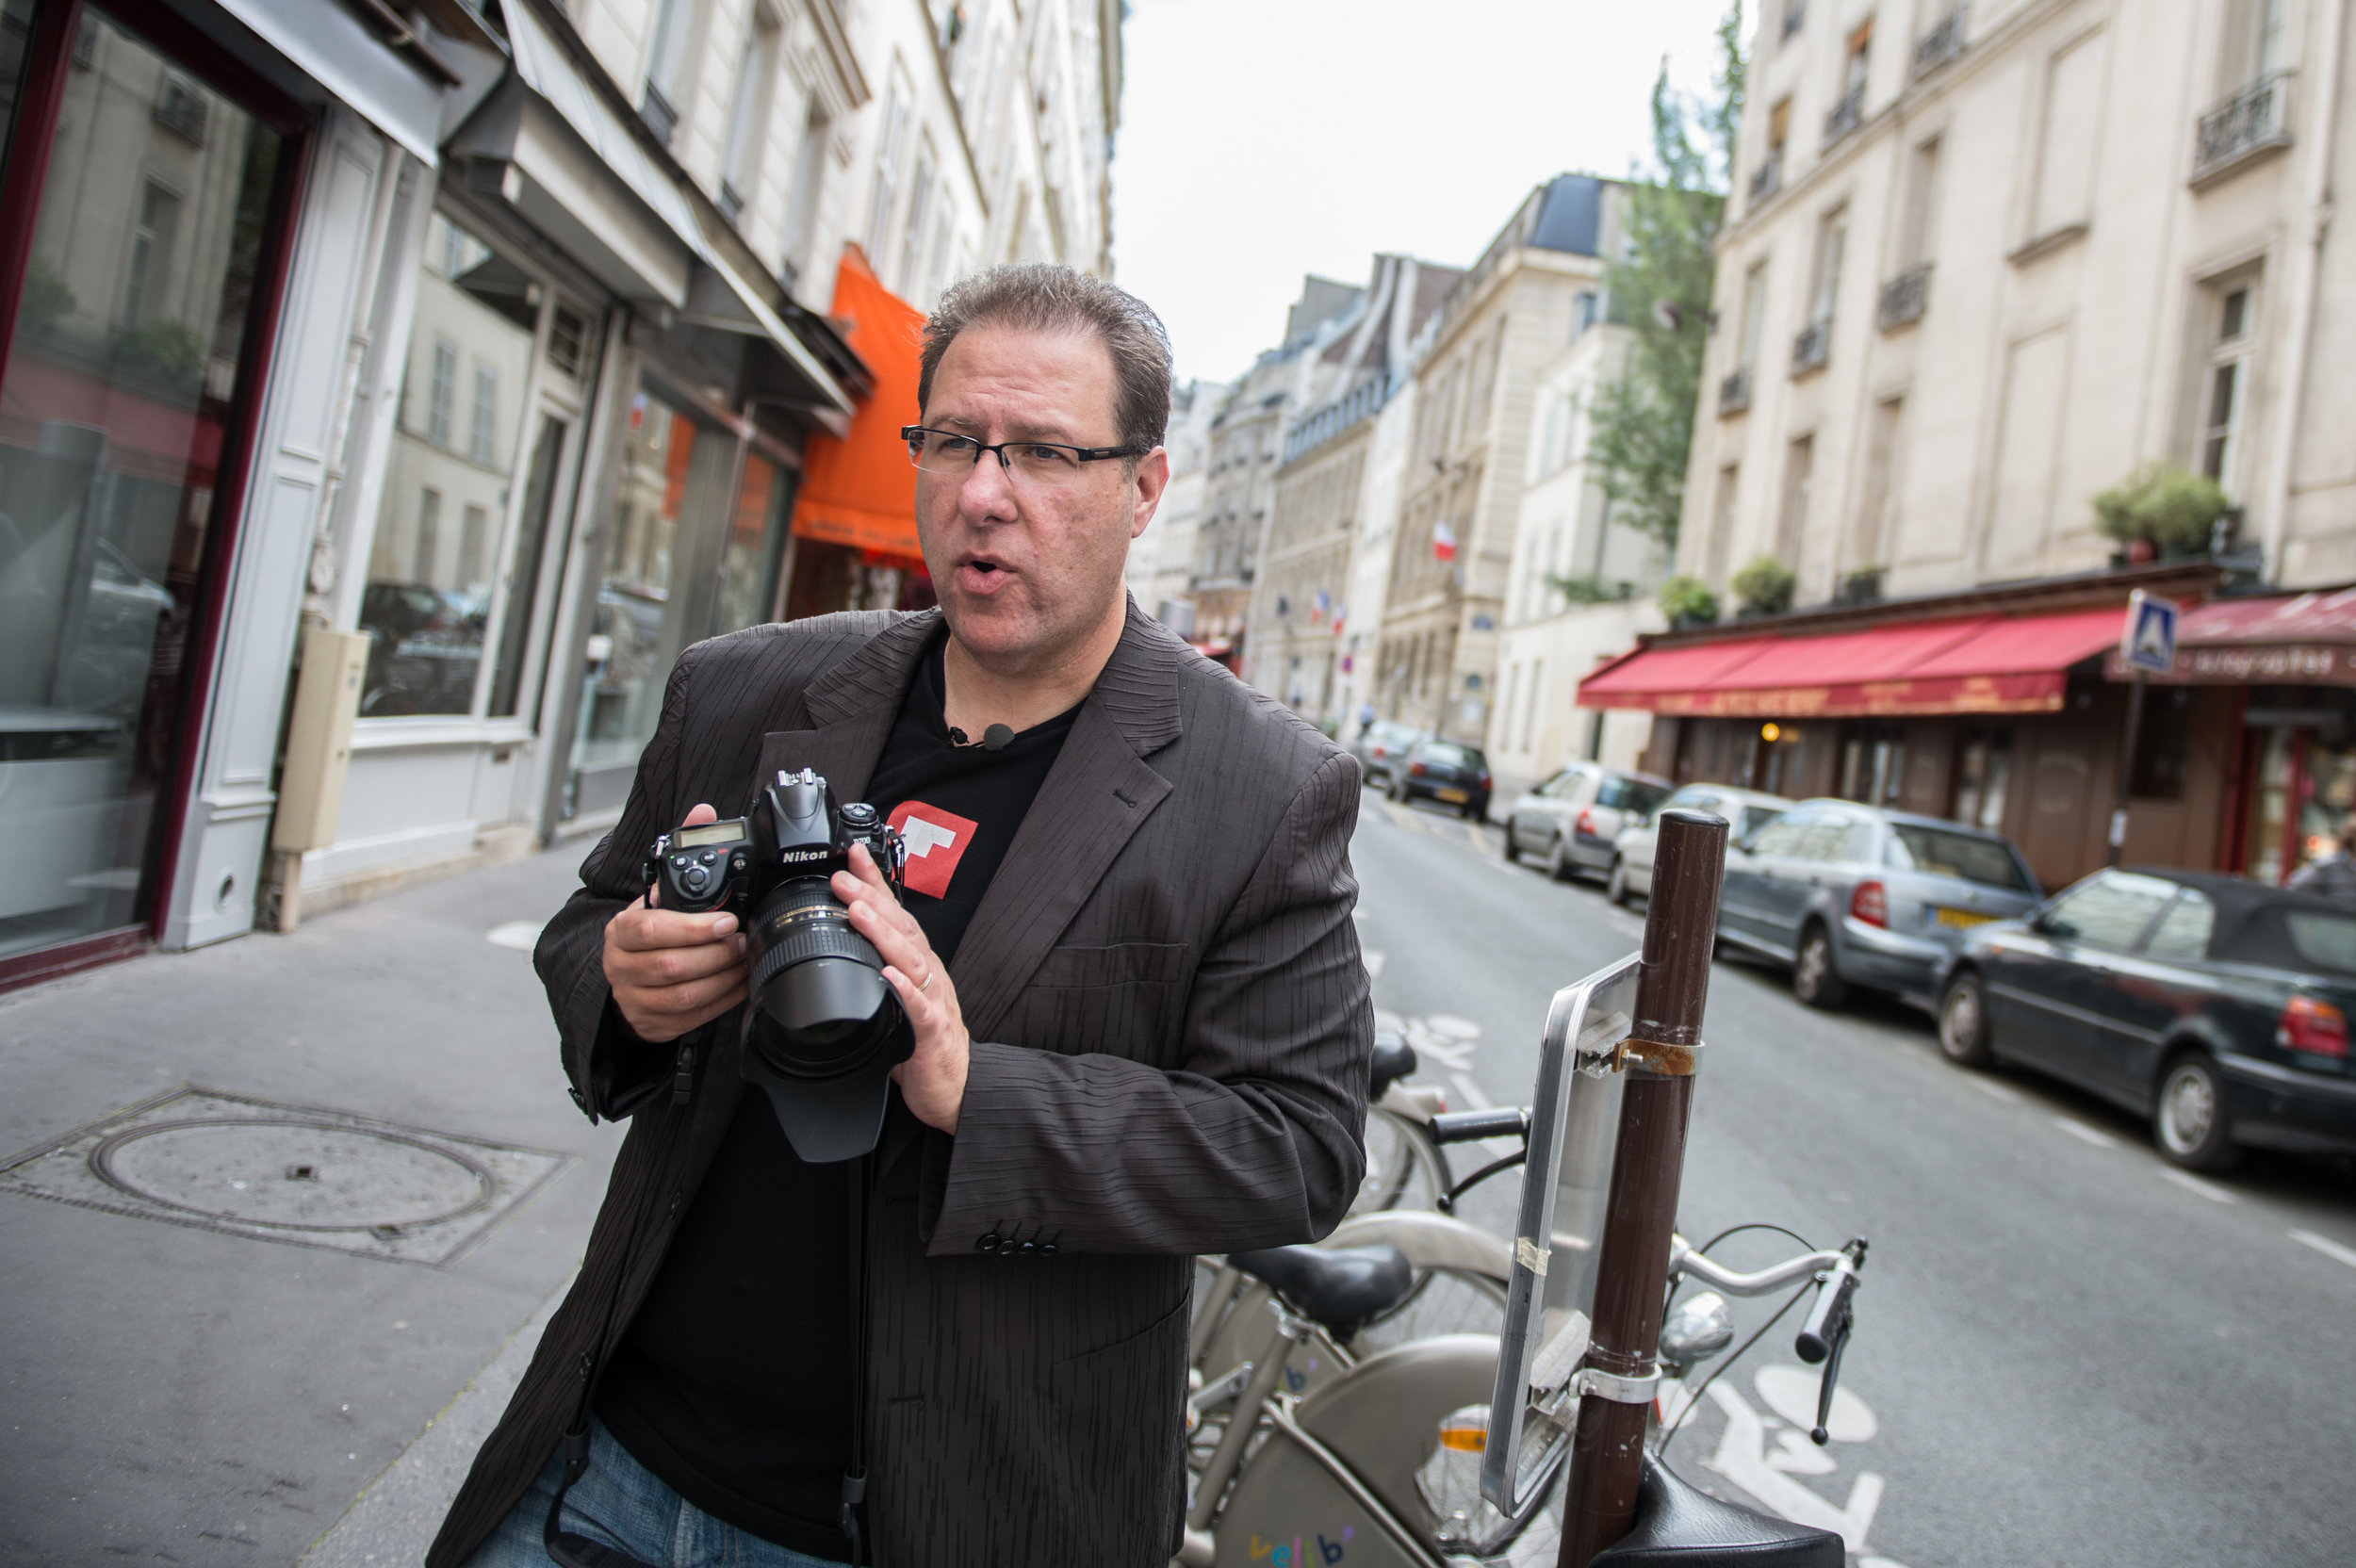 Scott on the streets of Paris teaching travel photography